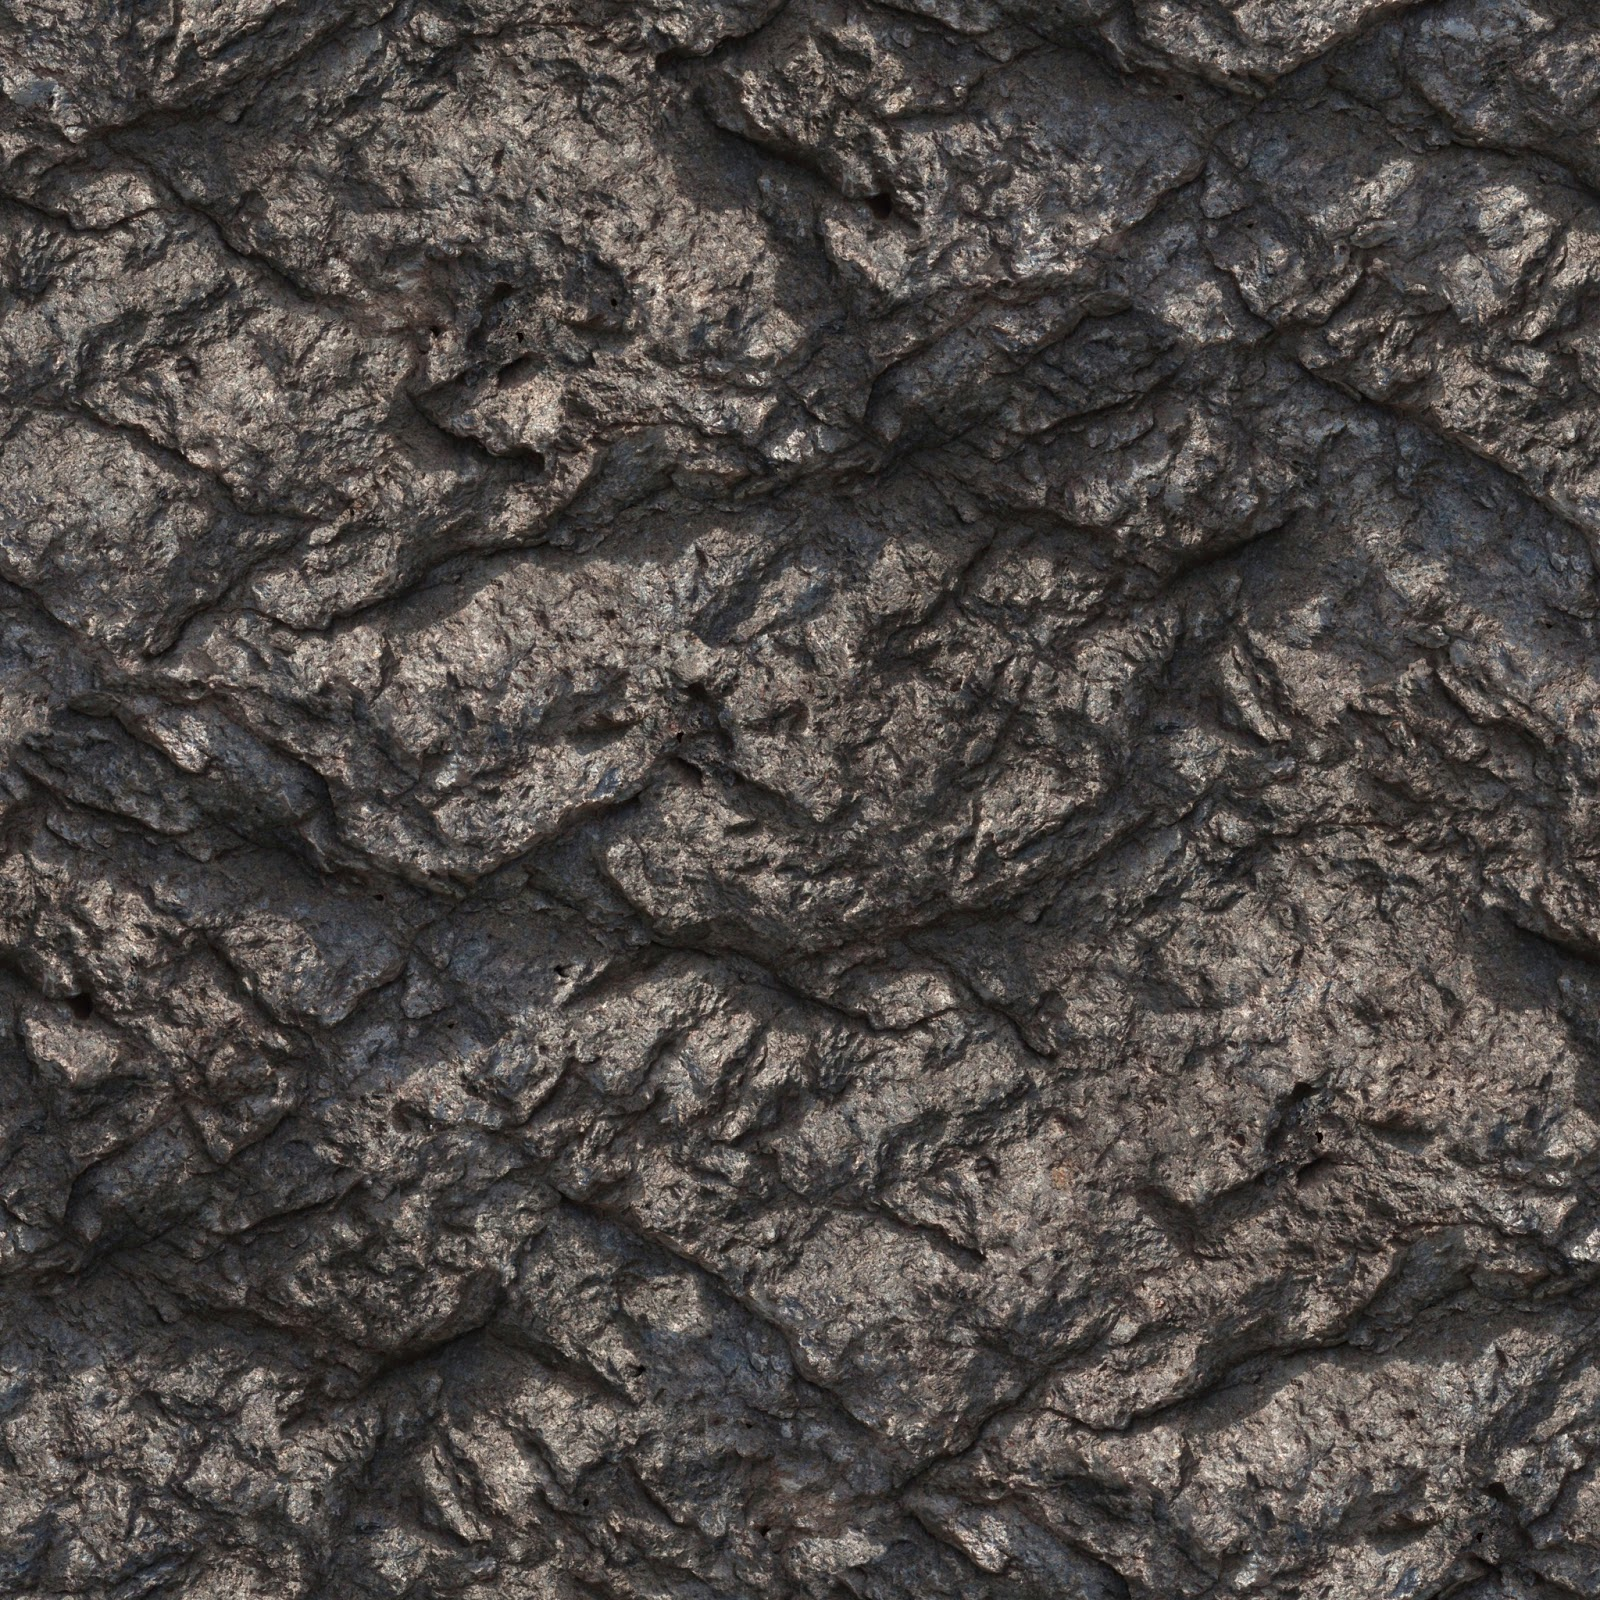 All Colours Rough Paint Wall Texture Seamless : High Resolution Seamless Textures: Seamless Mountain Rock Face Texture